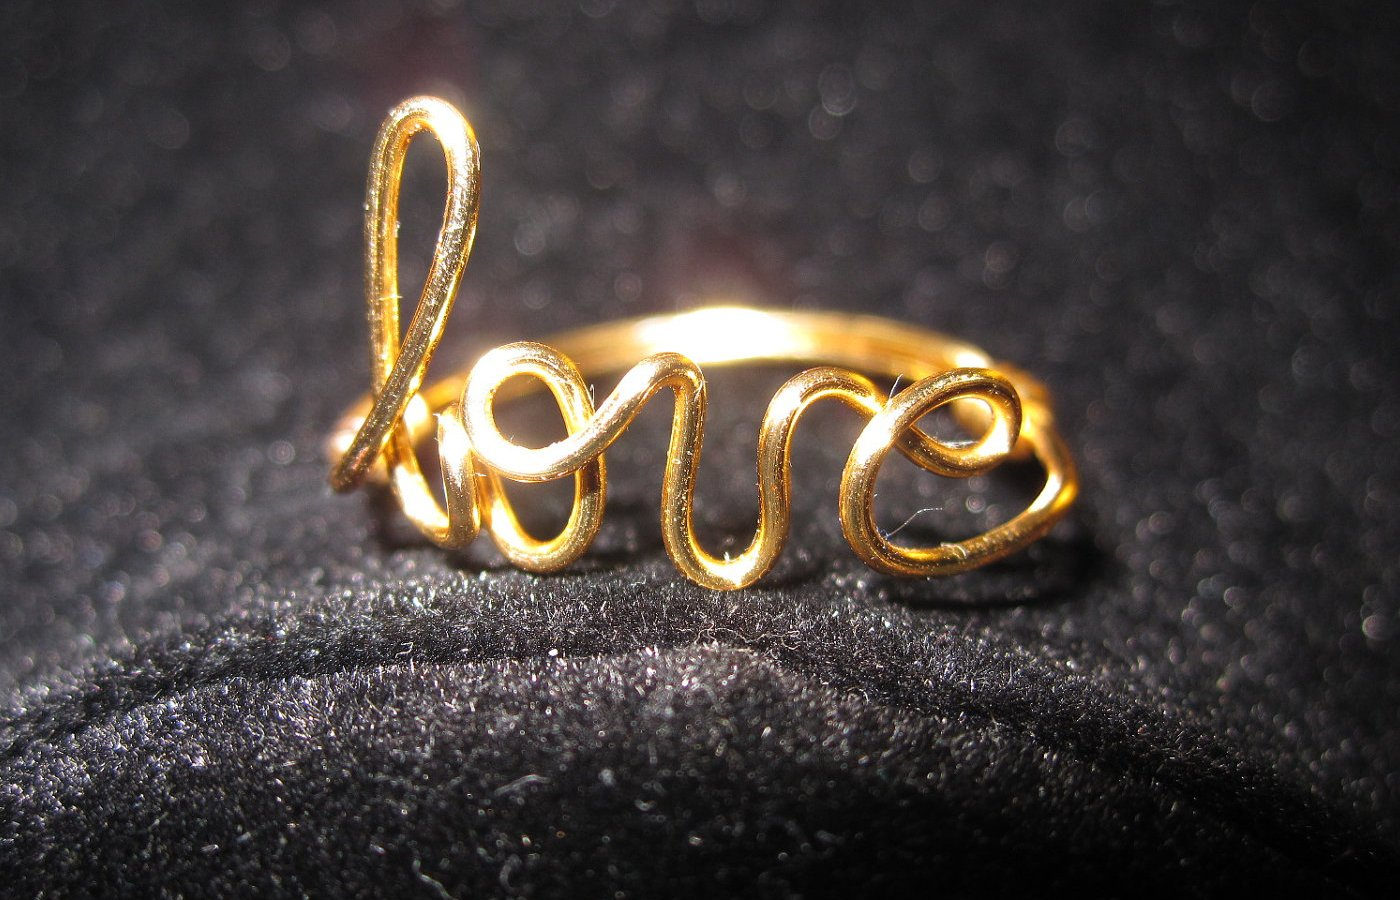 Love Wallpaper Ring : Gold Love Ring Wallpaper Pictures 60236 1400x900 px ...